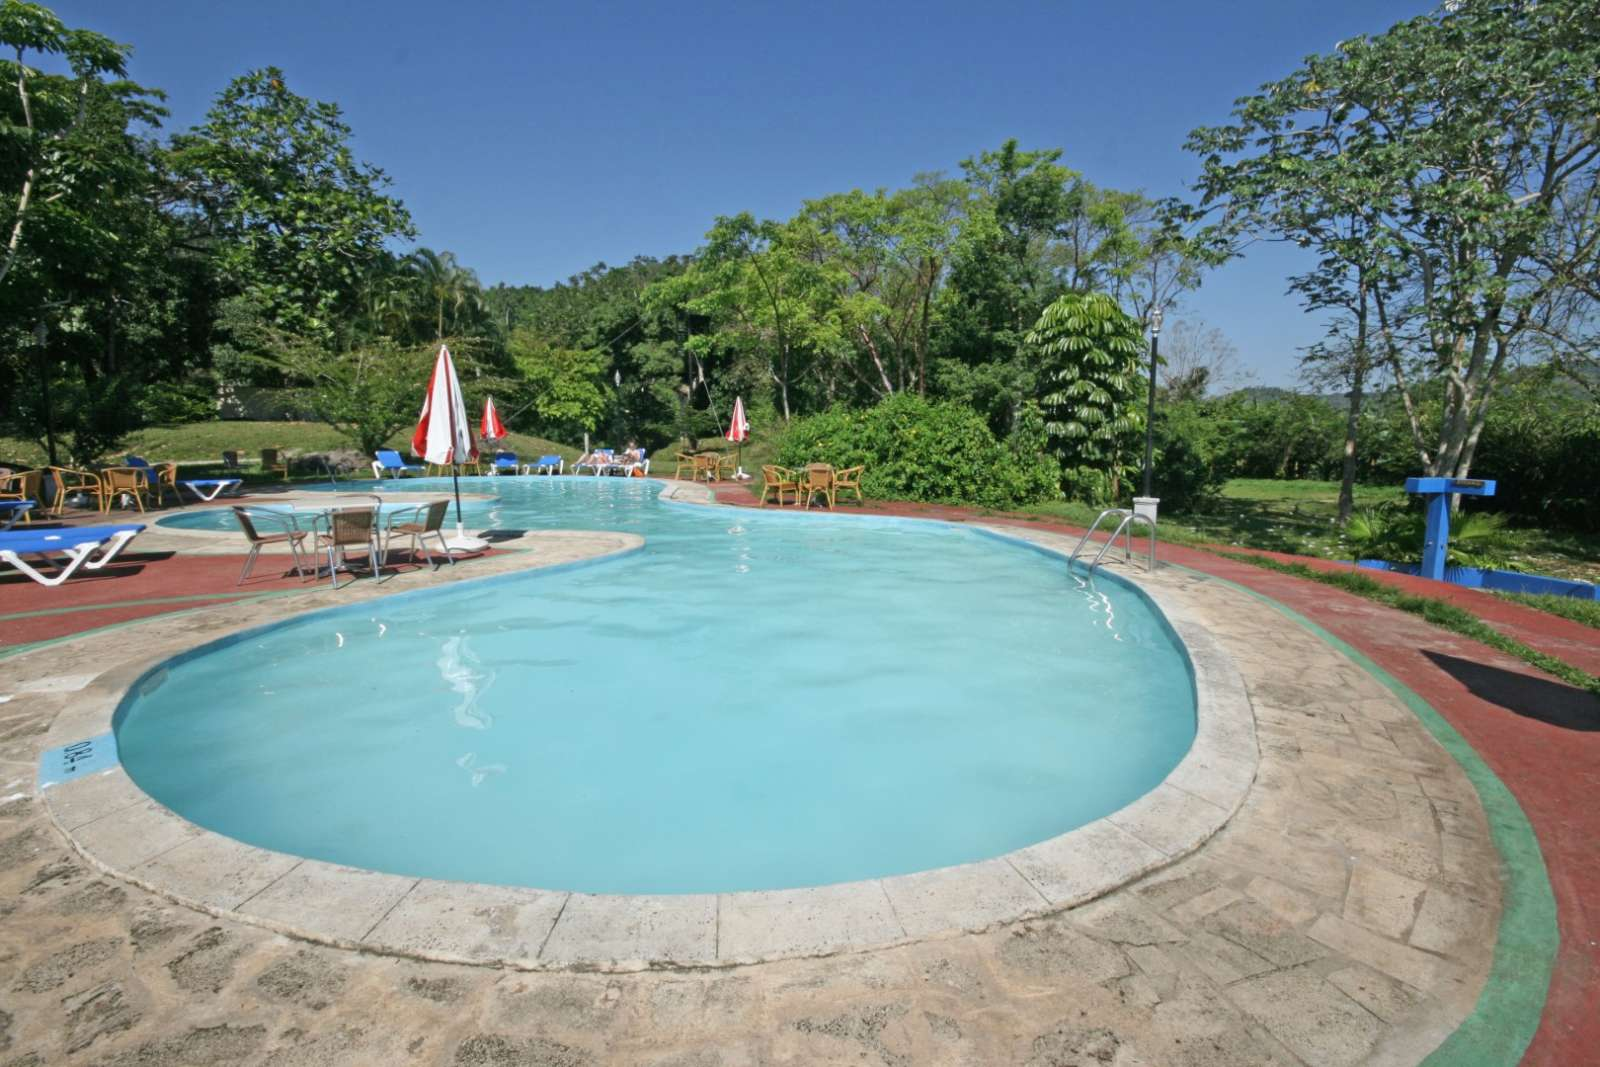 Swimming pool at La Moka hotel in Las Terrazas, Cuba